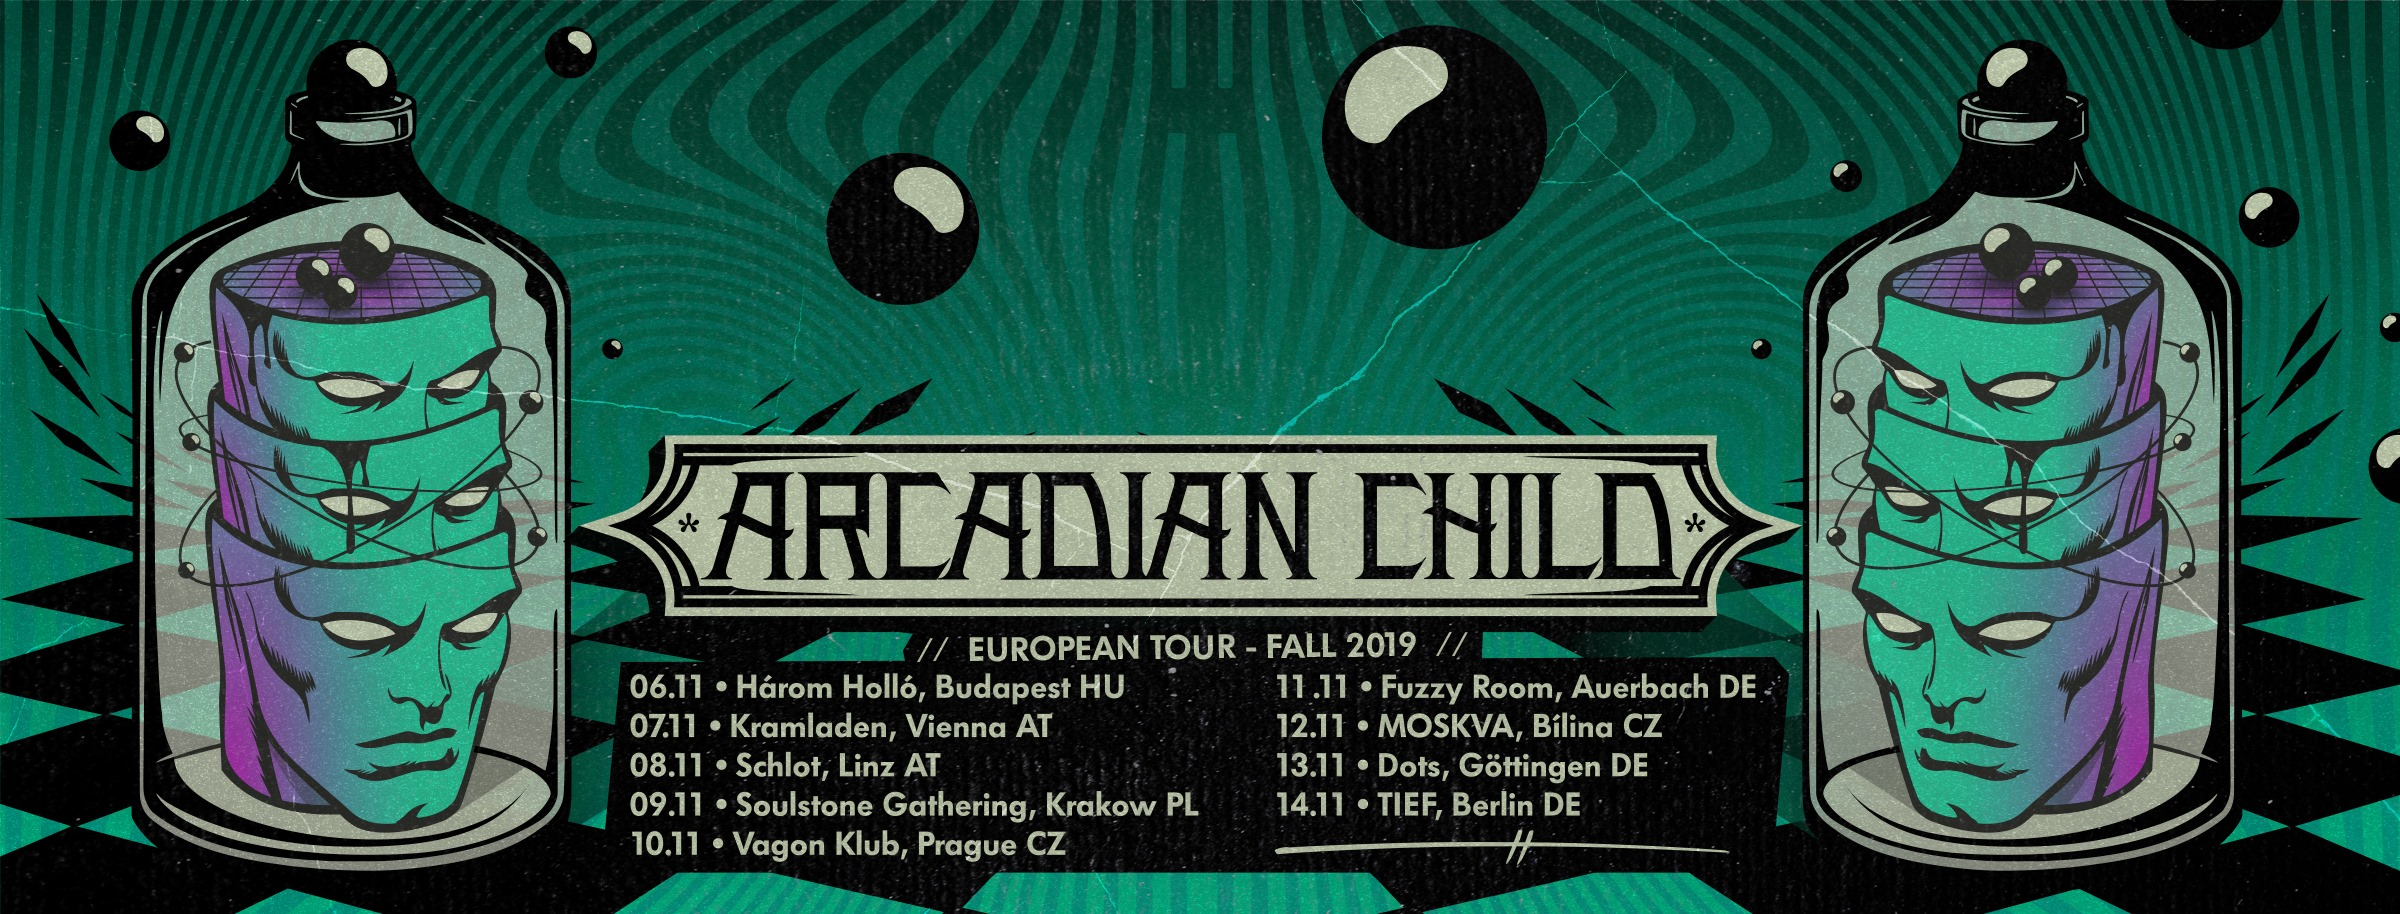 arcadian child tour banner